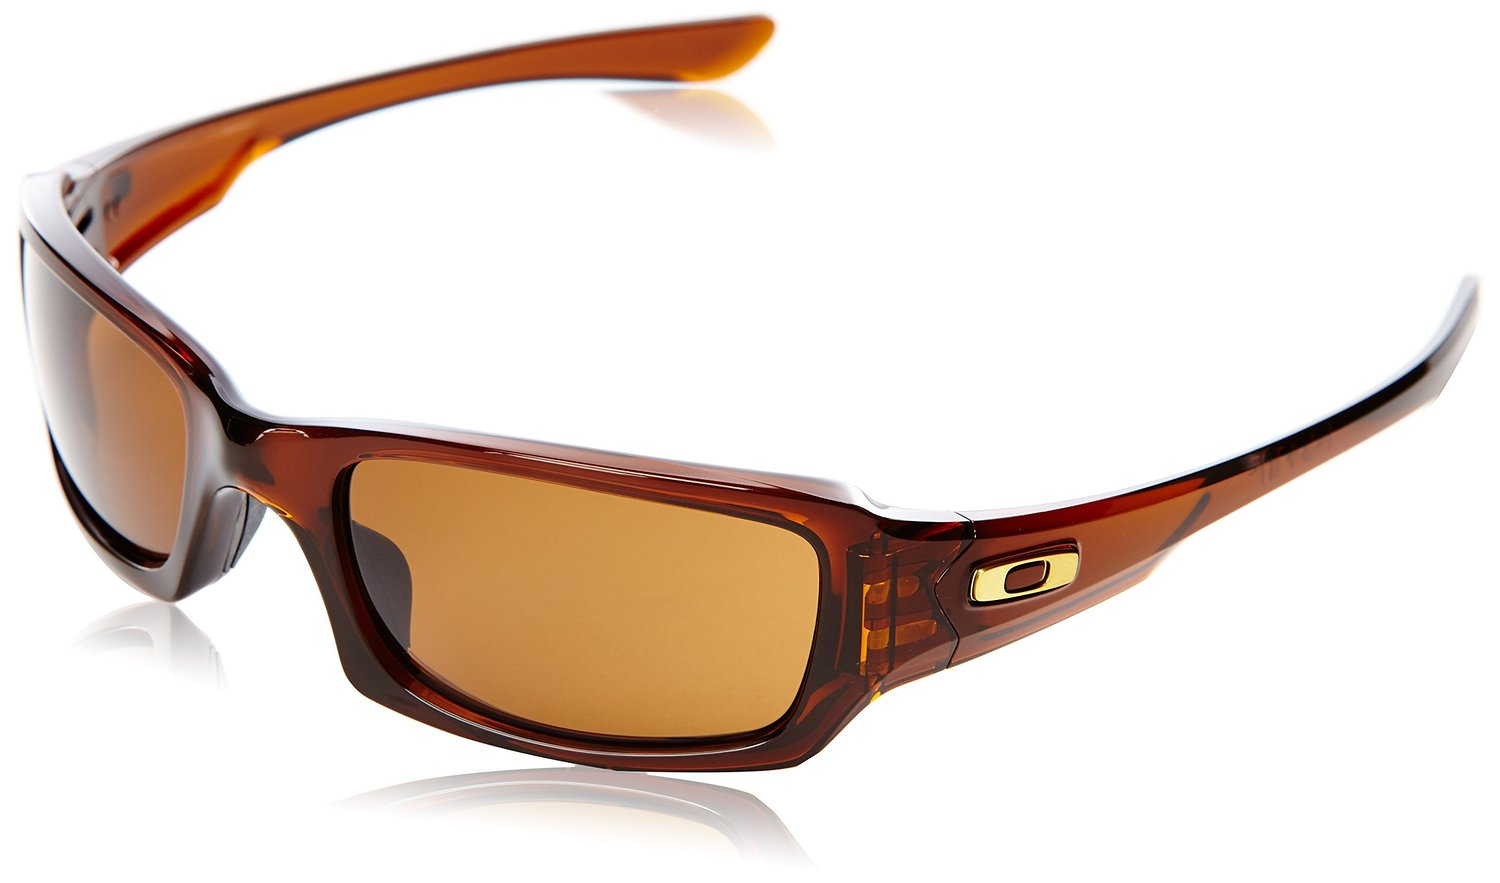 Oakley Fives Squared Polished Rootbeer / Dark Bronze Lens Mens Sunglasses: Oakley